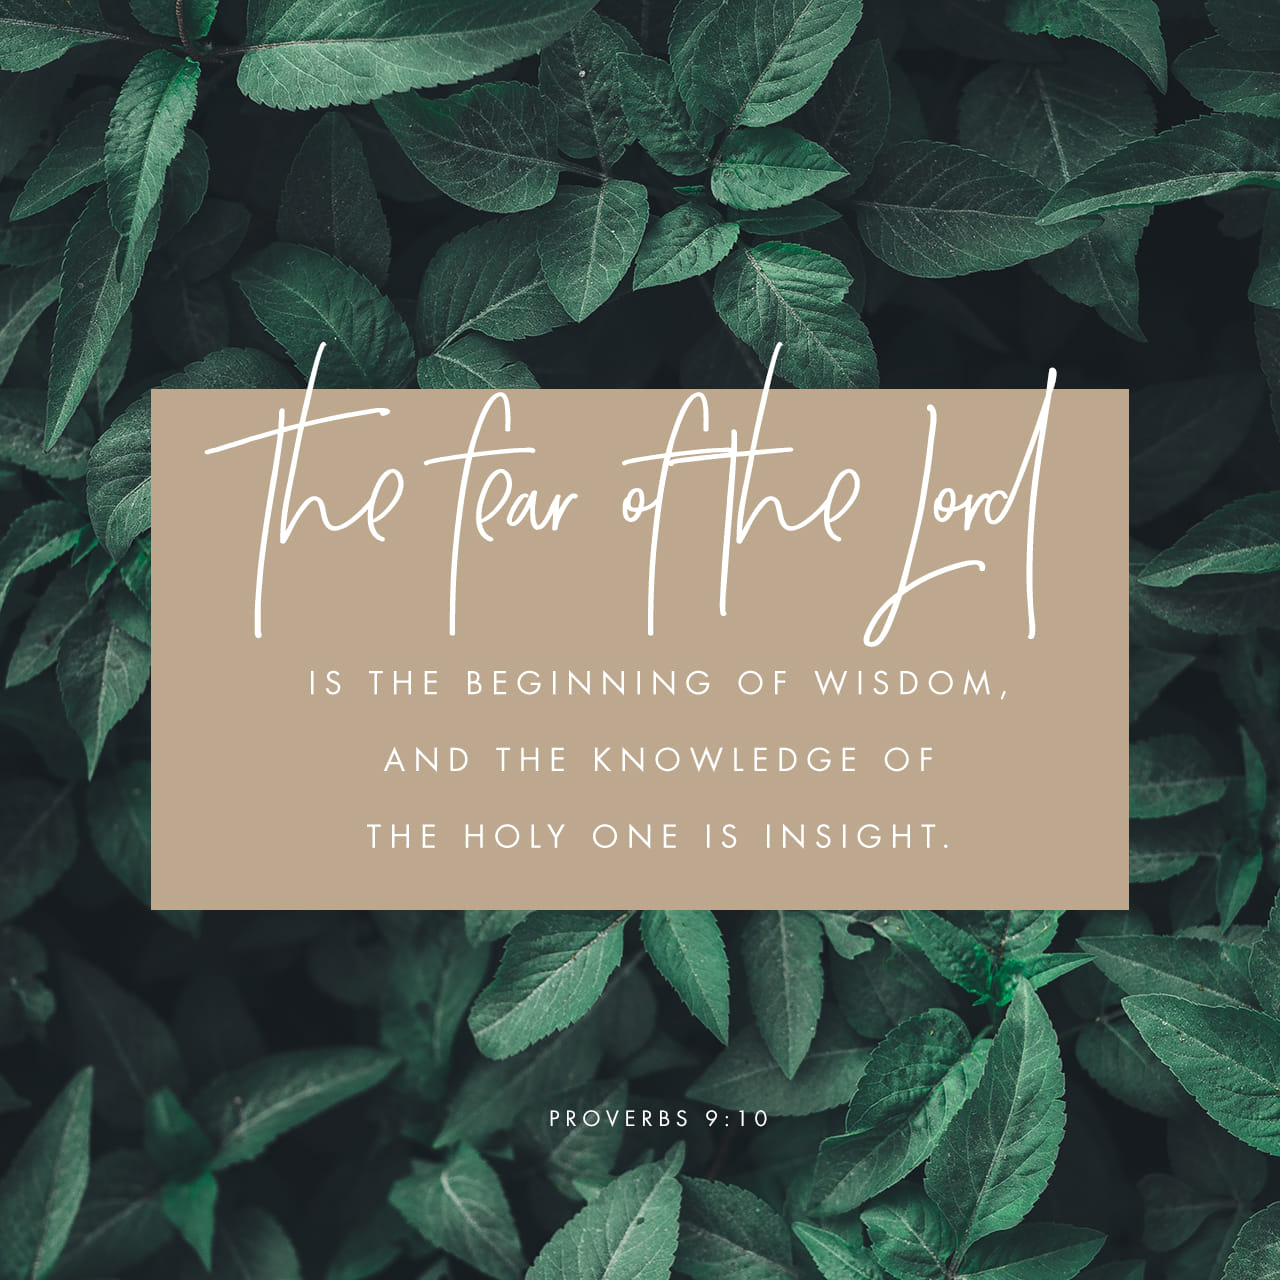 Proverbs 9:10 The fear of the LORD is the beginning of wisdom, and knowledge of the Holy One is understanding. | New International Version (NIV)